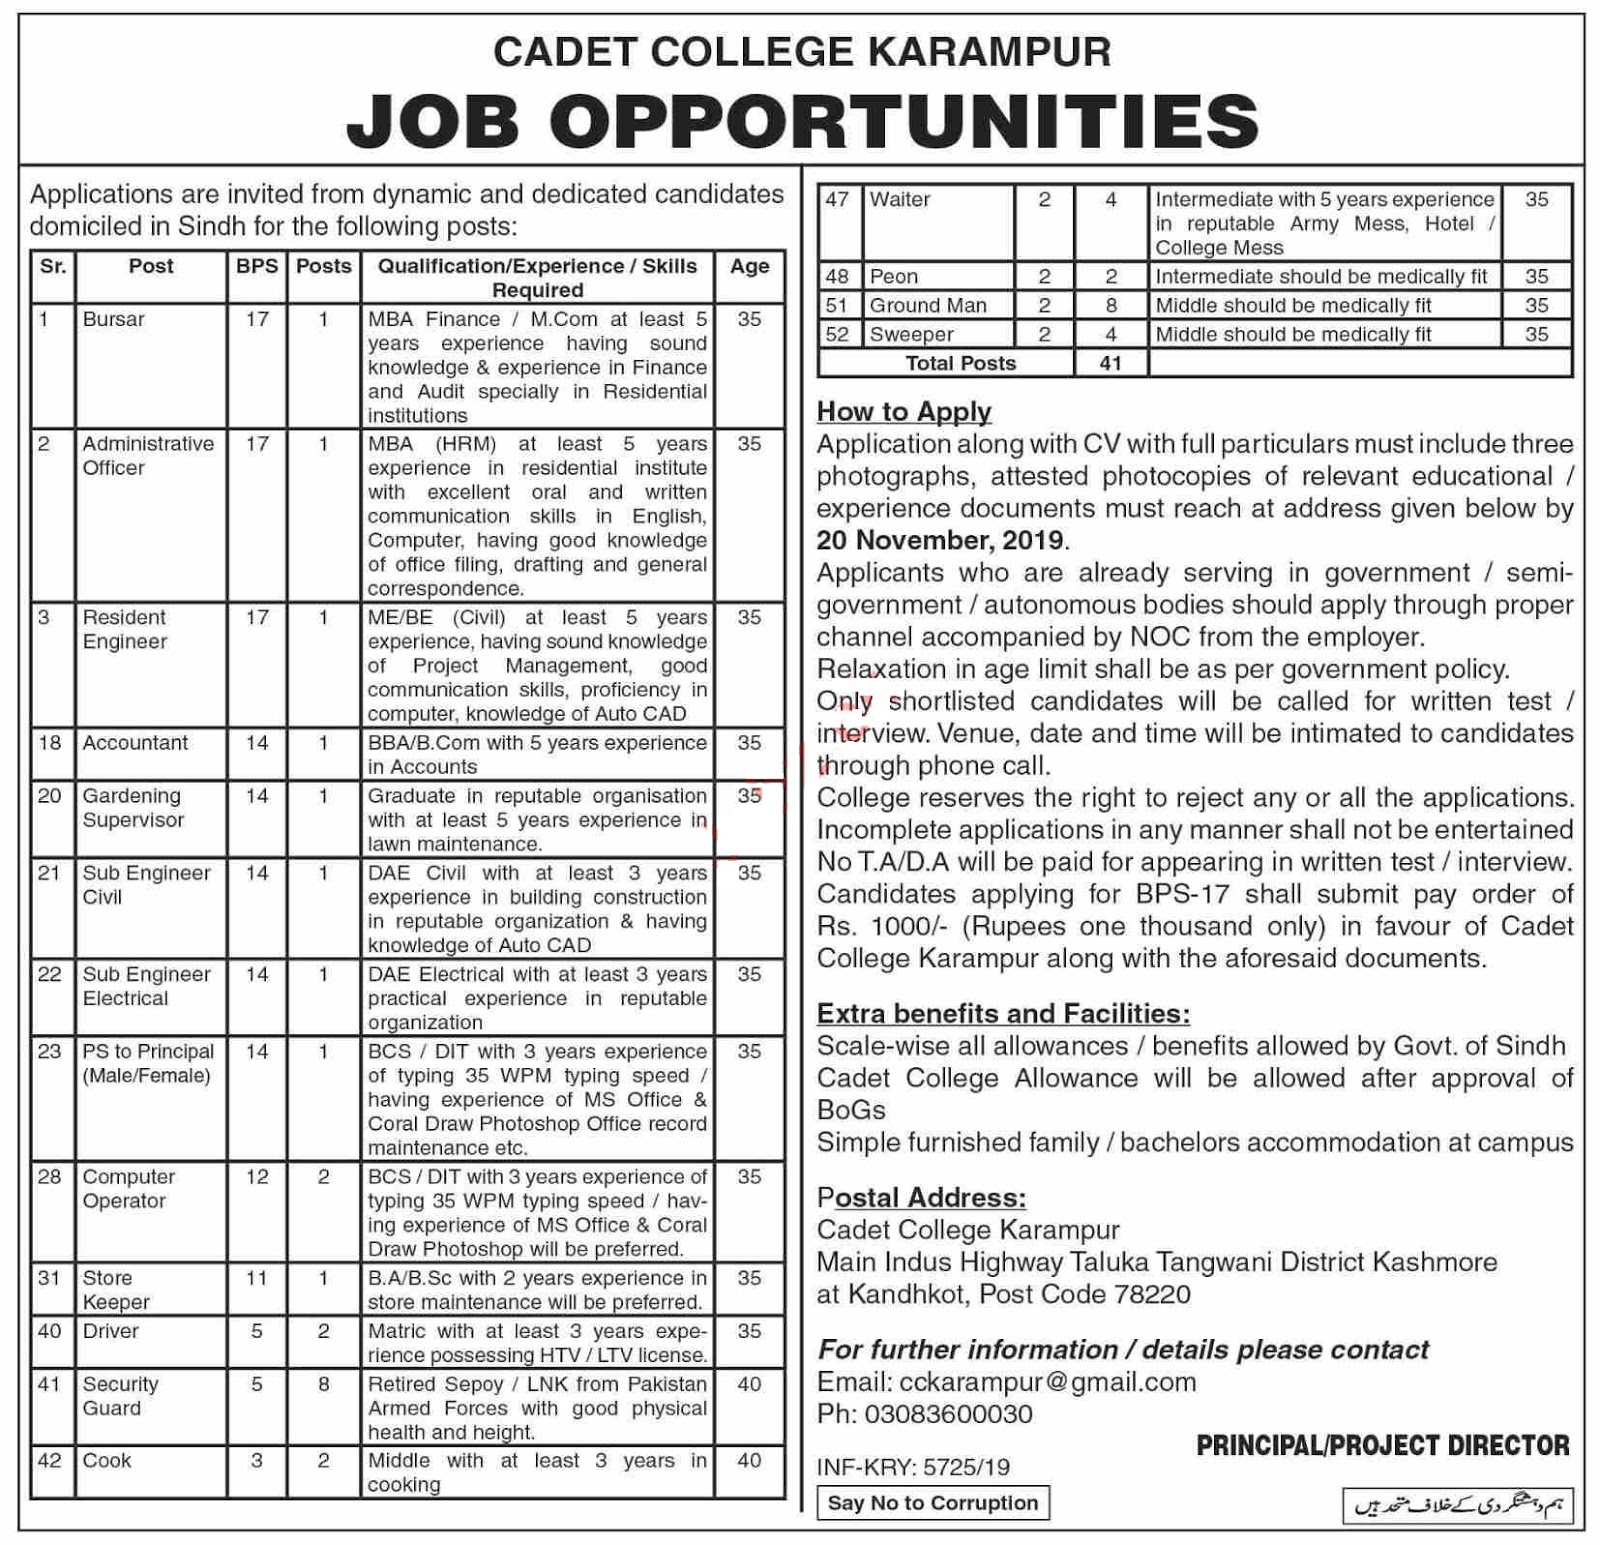 Cadet College Karampur Jobs 2019 at Kashmore and Kandhkot